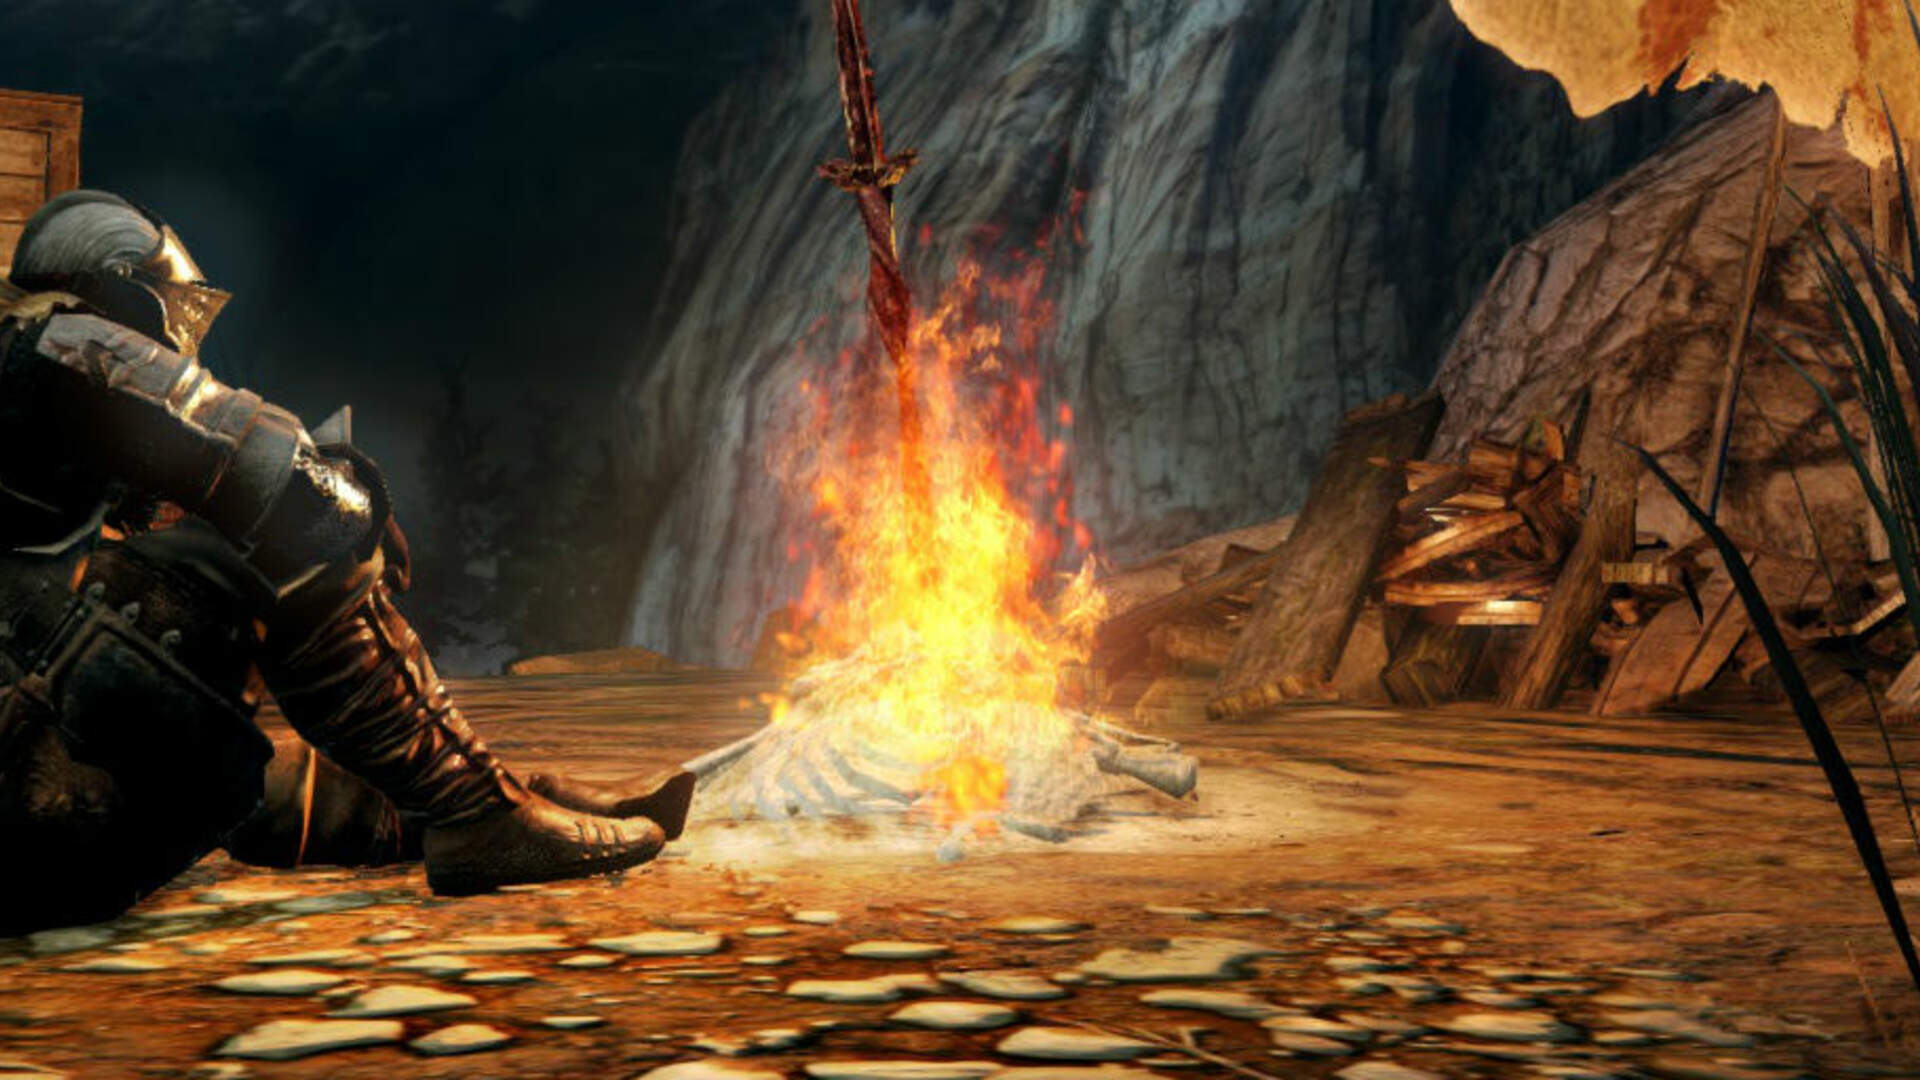 Dark Souls 2 Guide: Continue Through the Iron Keep and Defeat the Old Iron King